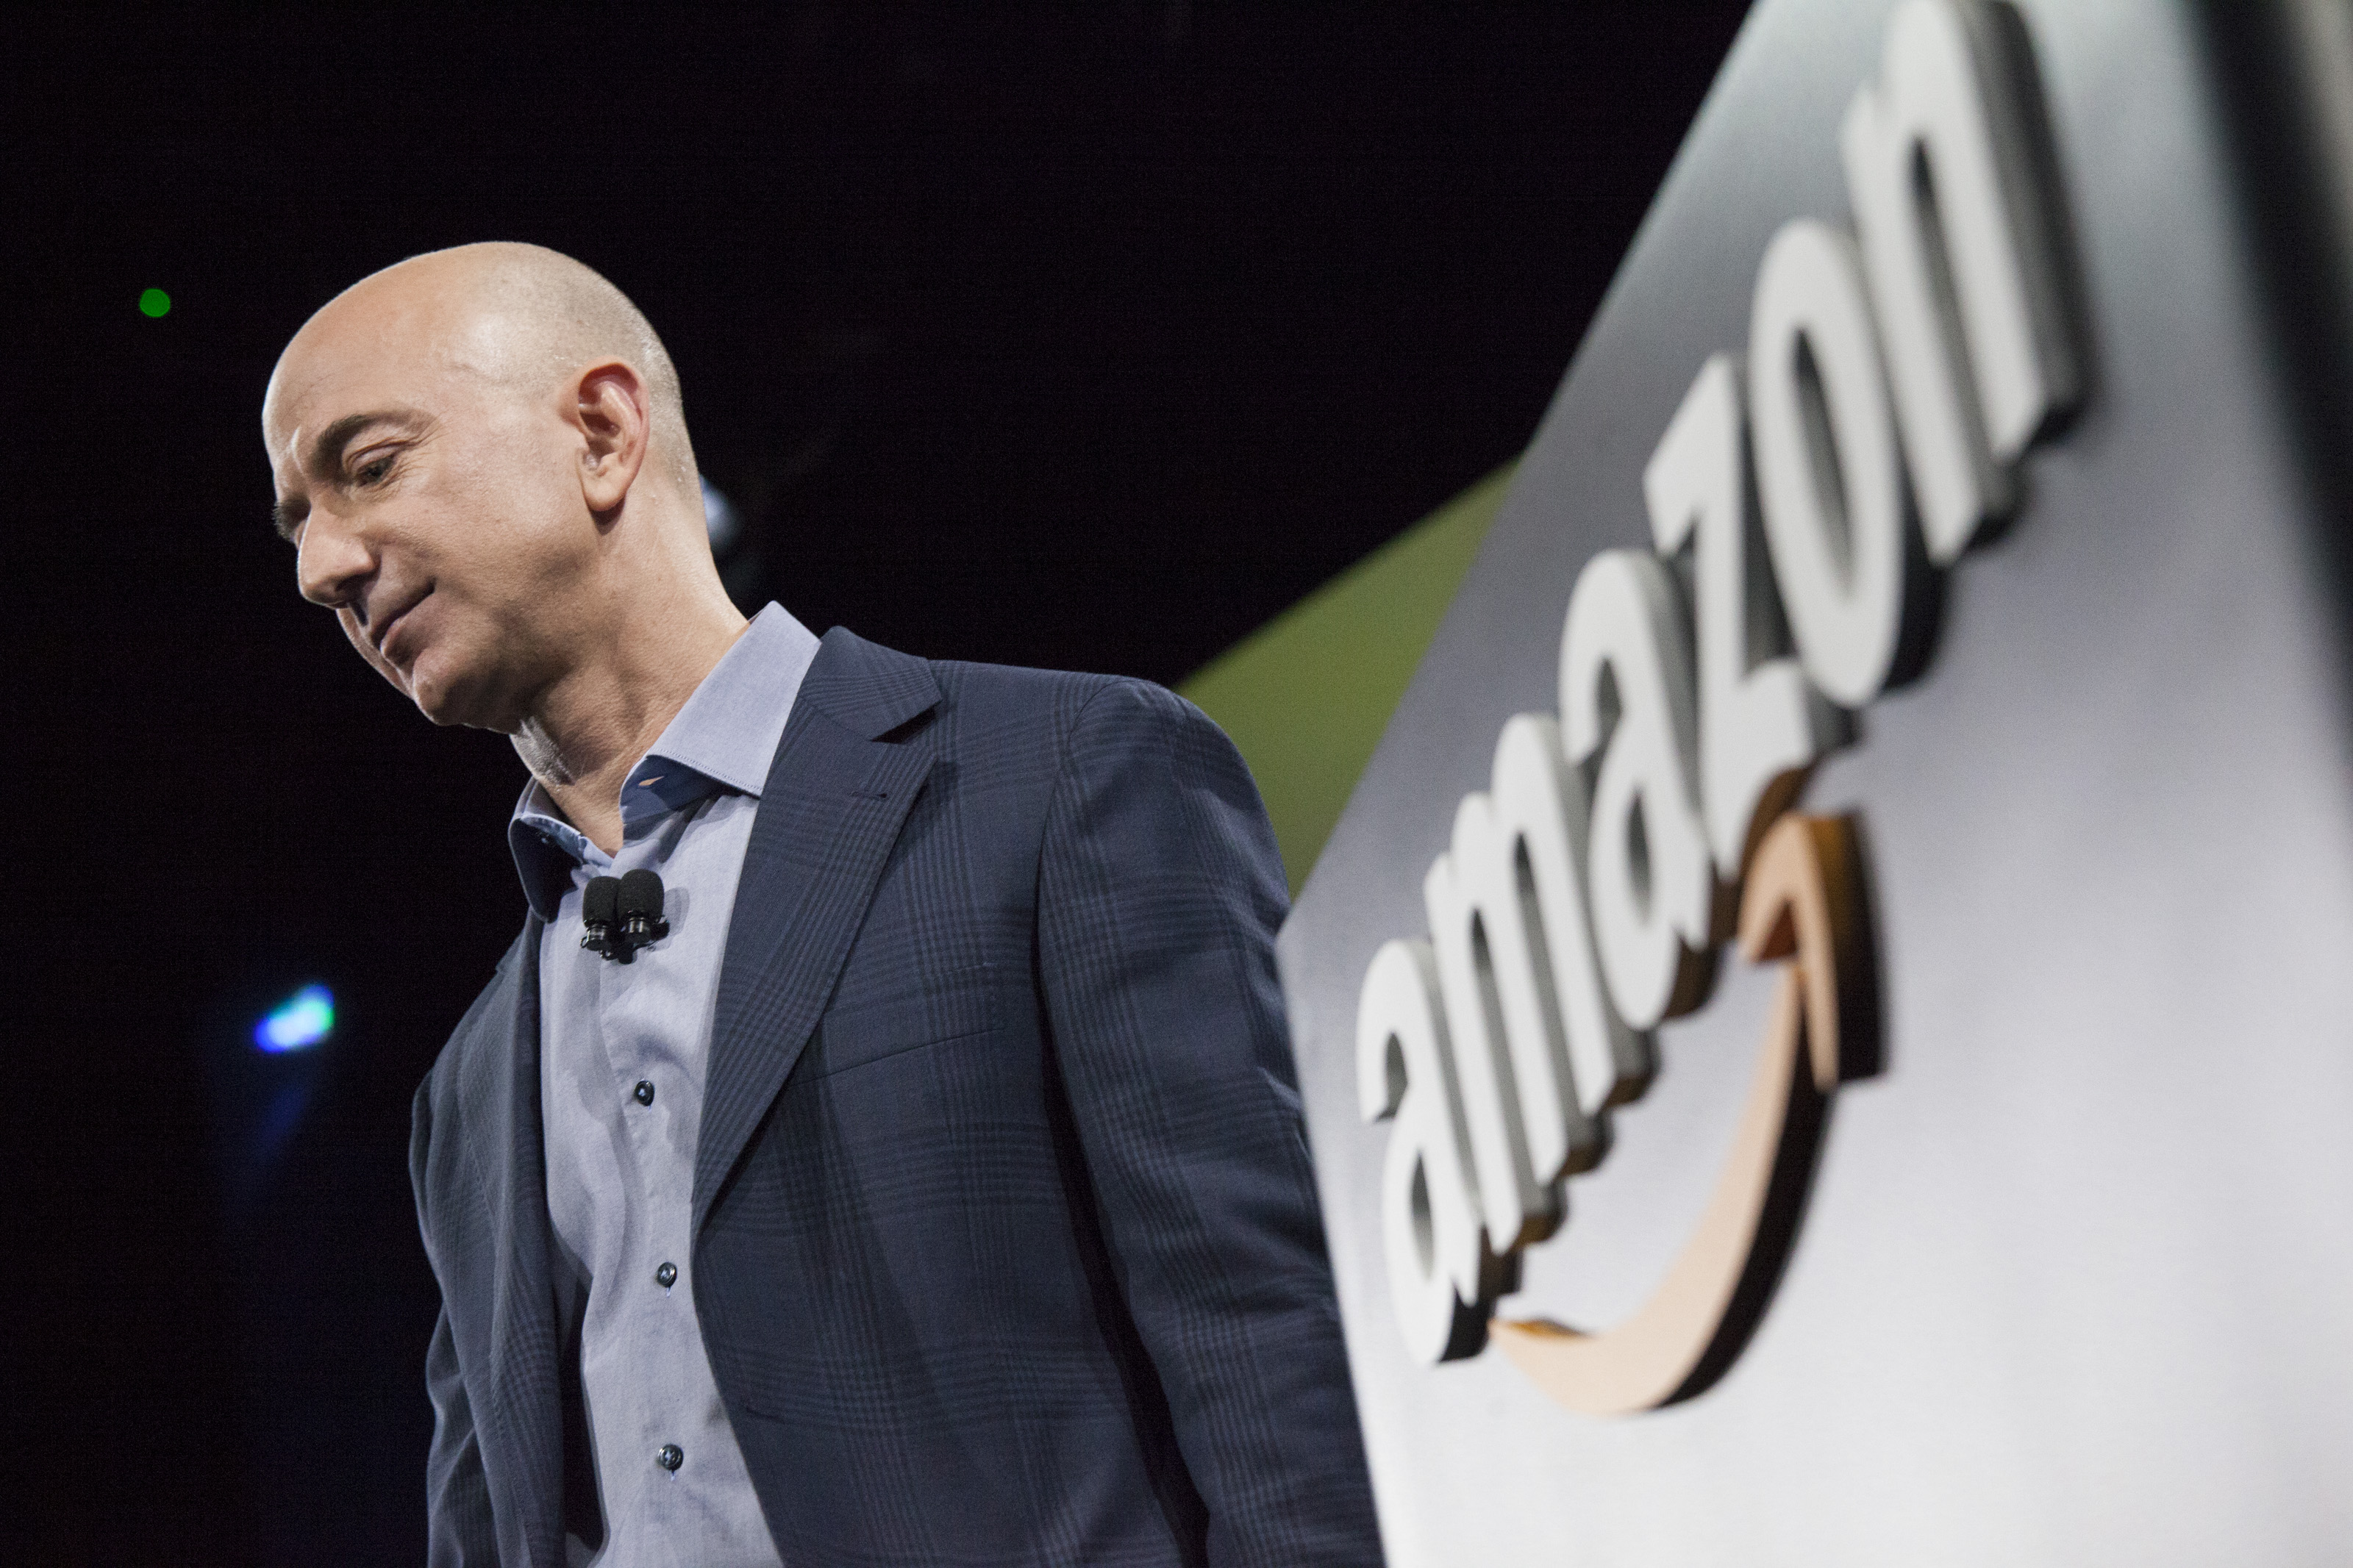 Amazon CEO Jeff Bezos presents the company's first smartphone, the Fire Phone, on June 18, 2014 in Seattle, Washington.